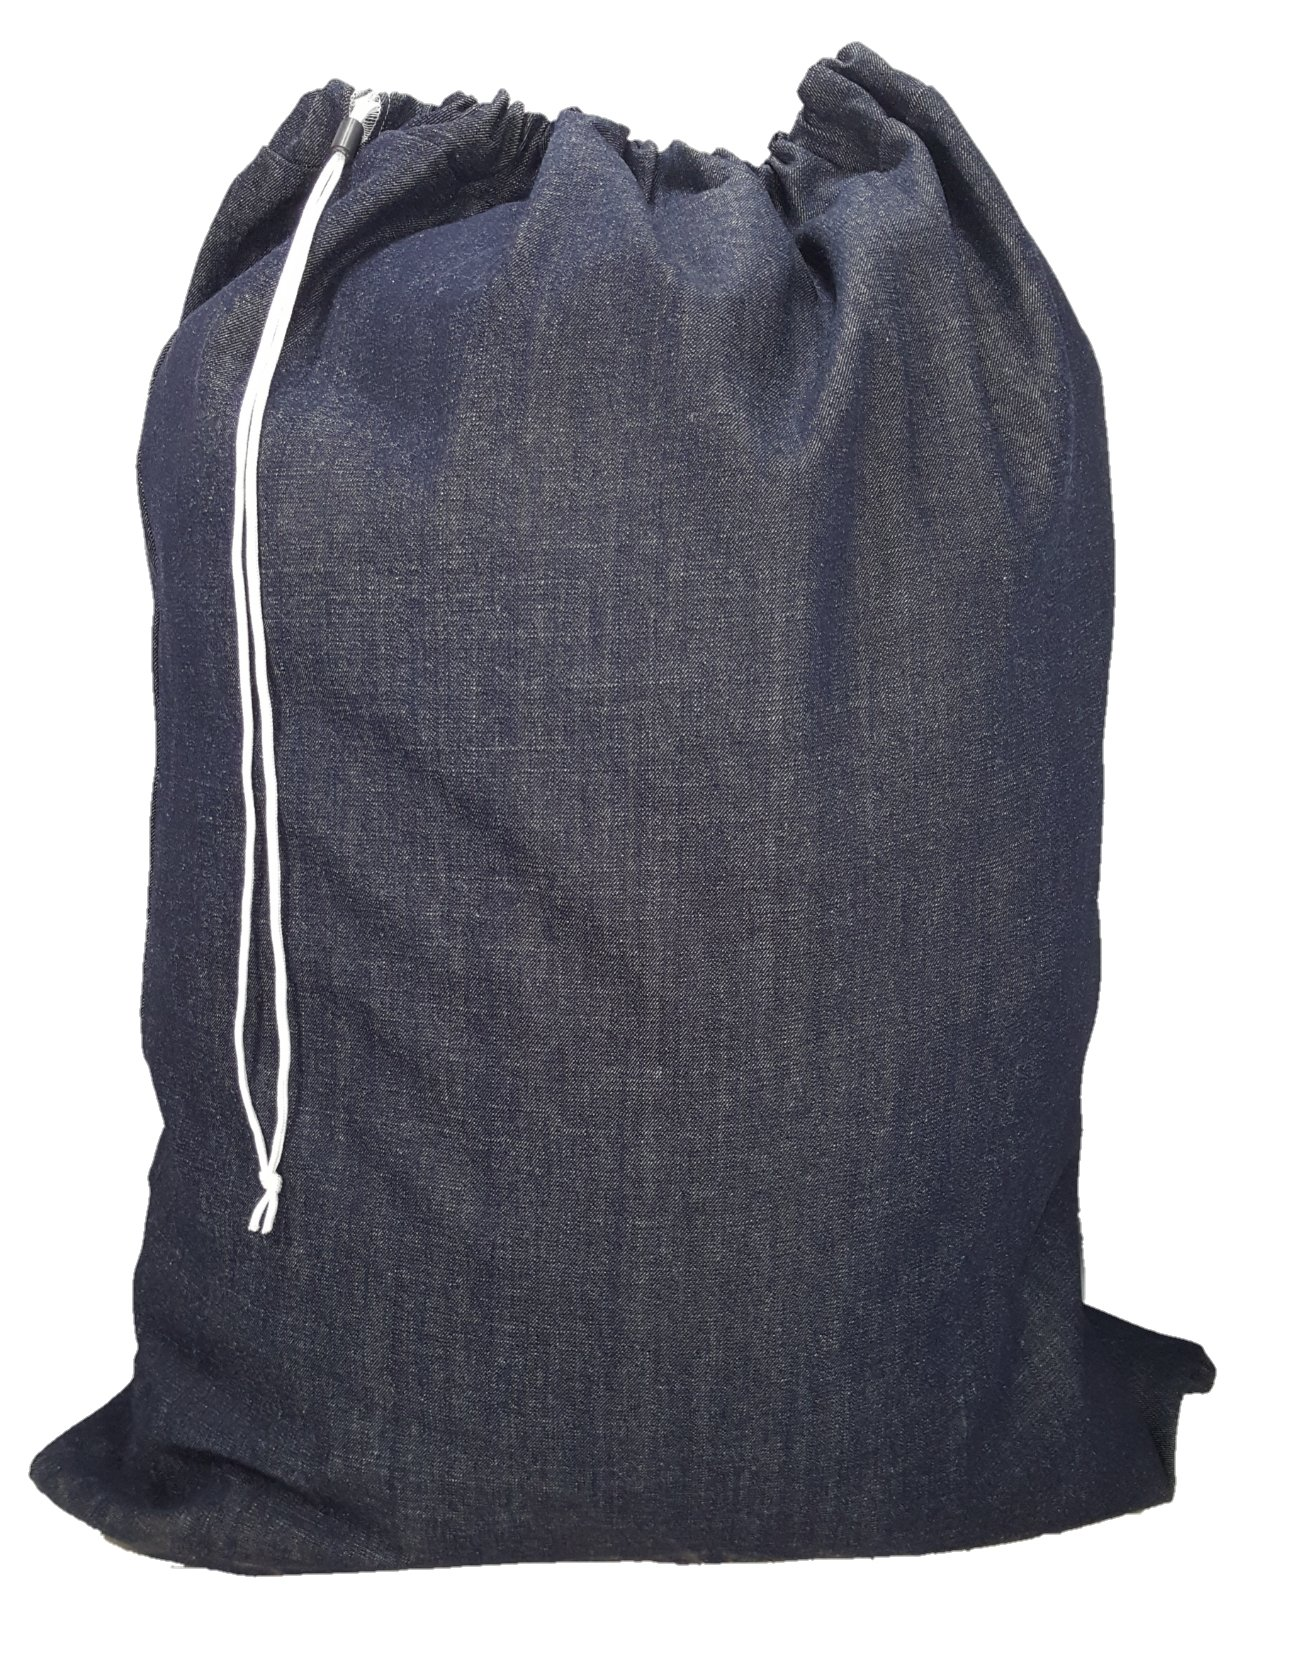 Ameratex Heavy Duty 10 oz Denim Laundry Bag 40in x 50in - Made in the USA